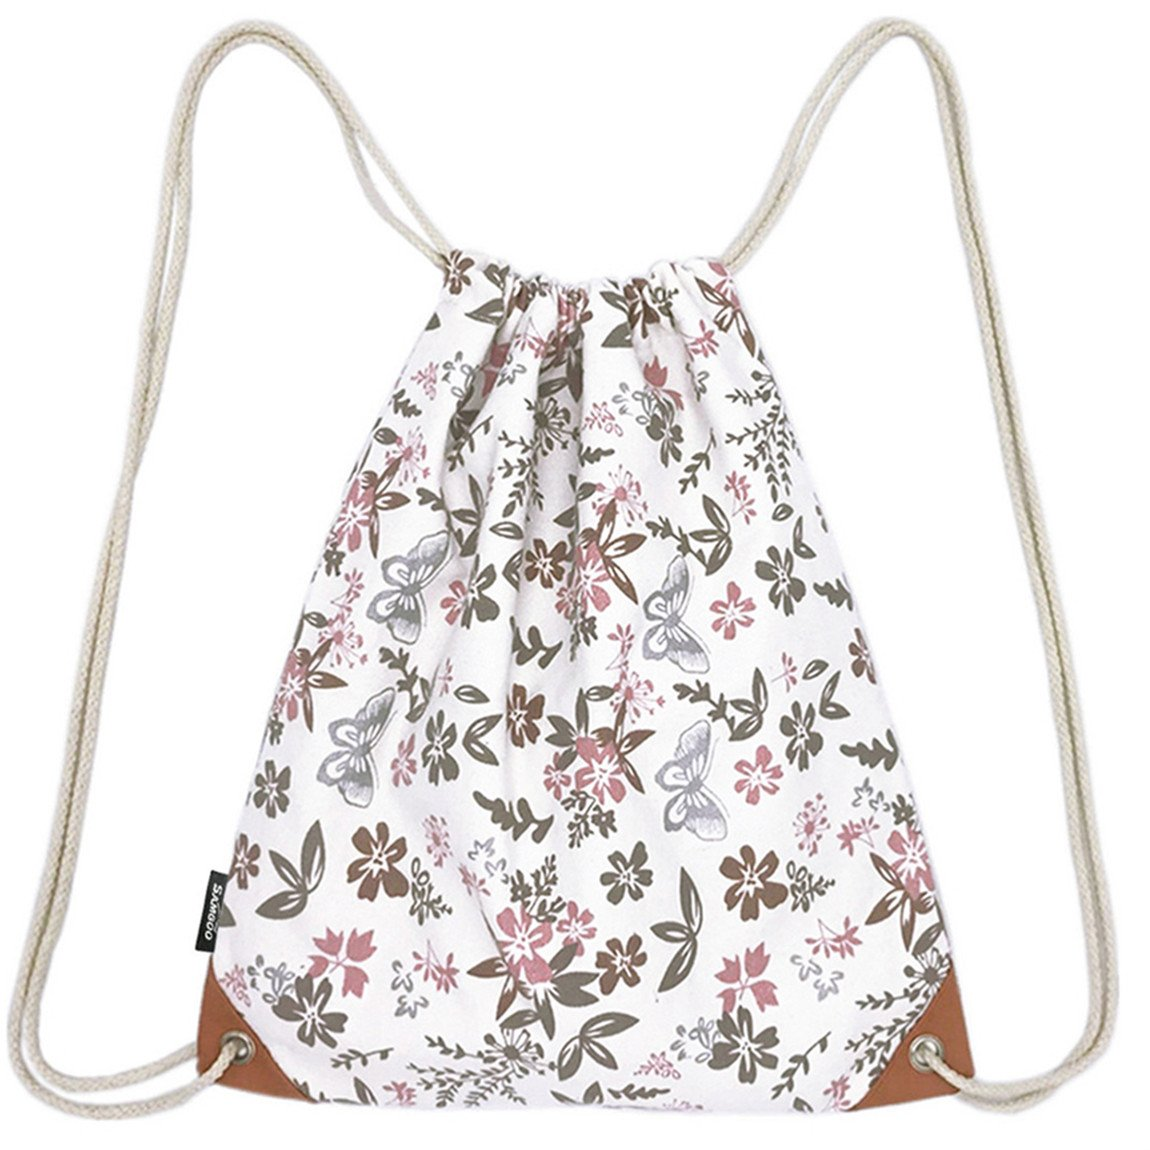 Amazon.com   SAMGOO Lightweight Canvas Drawstring Backpack Bag Sackpack Gym  Sack Sport String Bags Backpacks With PU Pocket (Flower   Butterfly) ... b5e88a9fa4